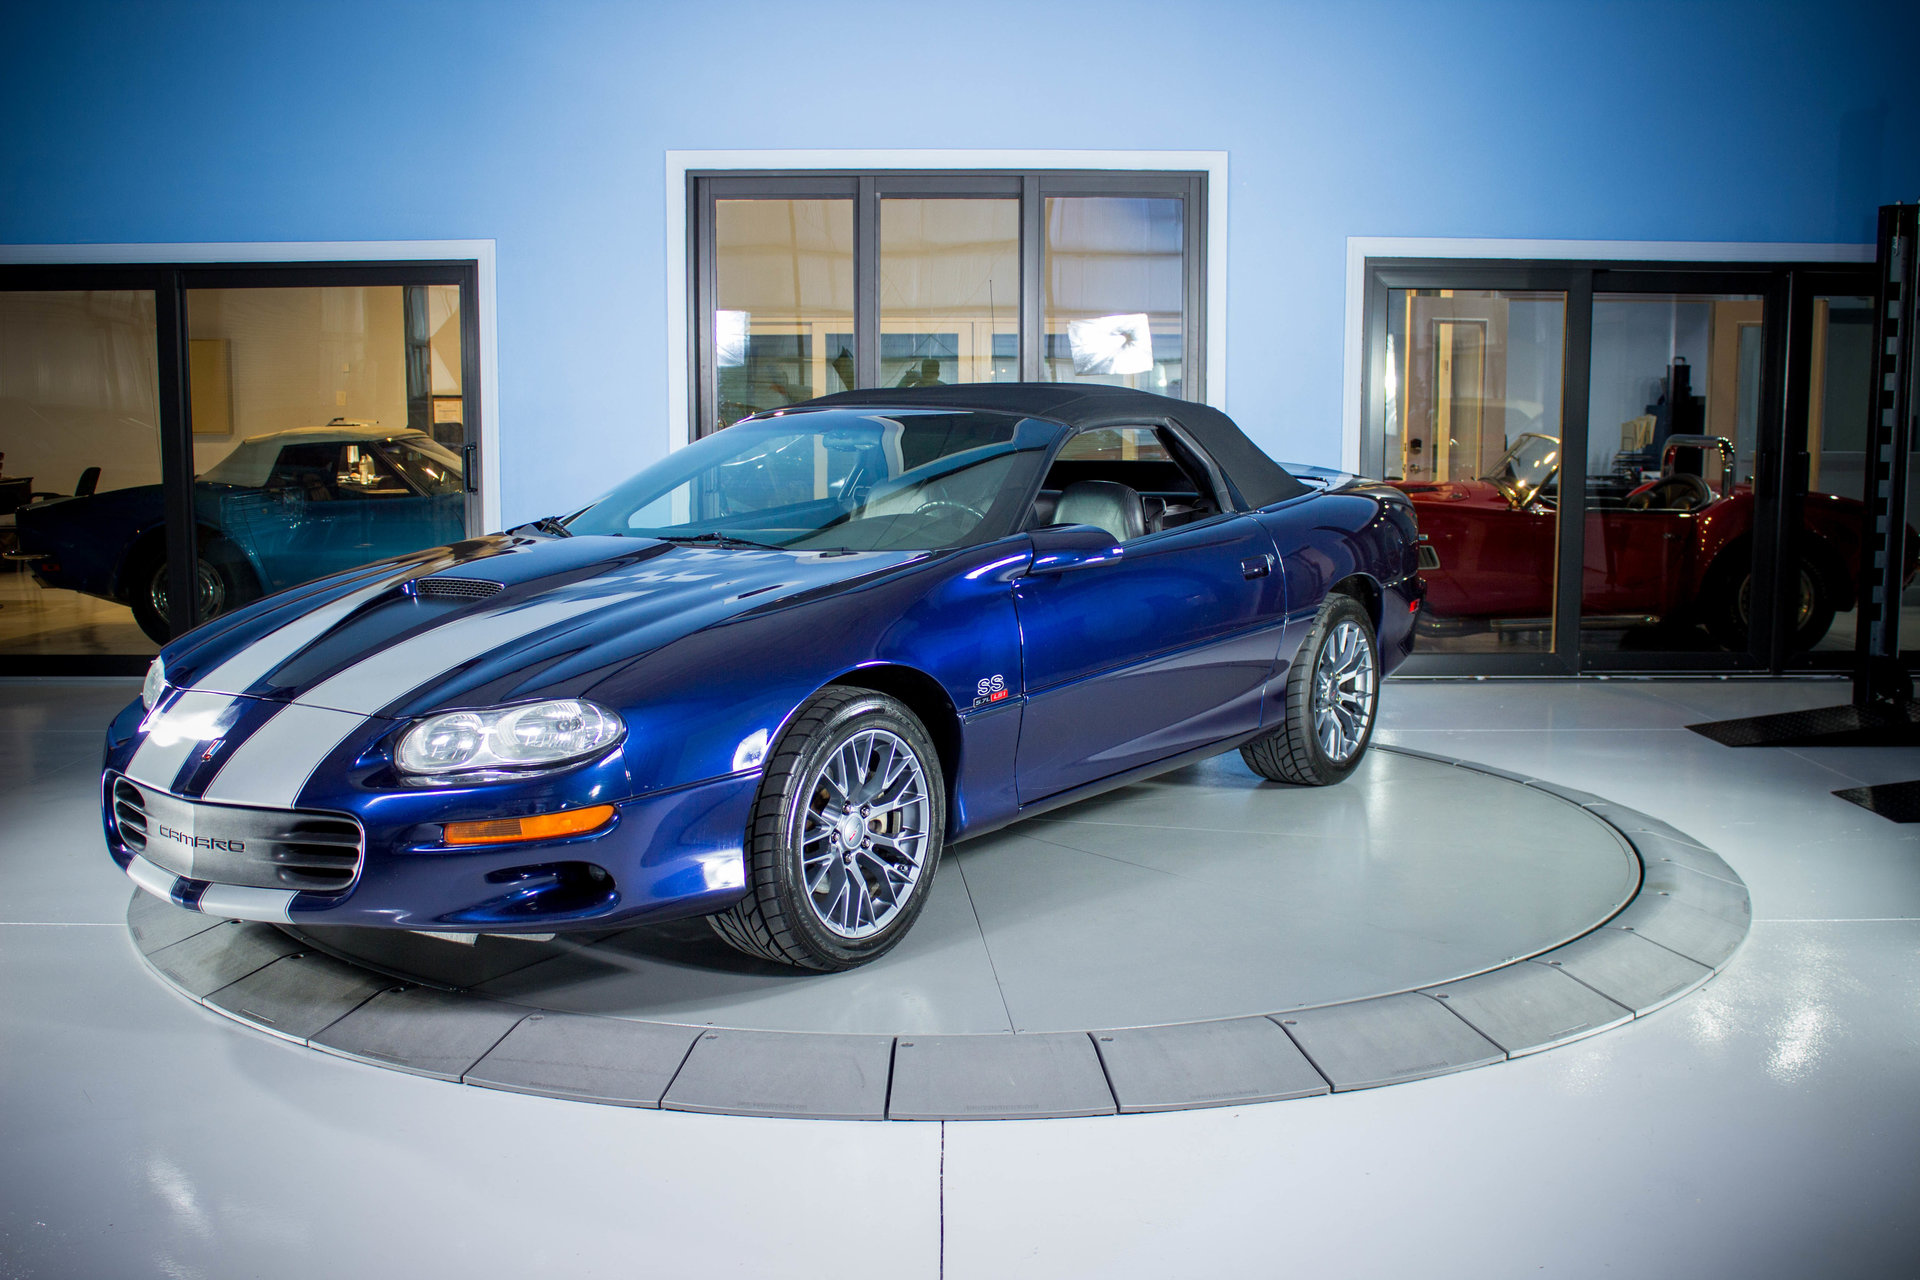 2002 chevrolet camaro ss slp 35th anniversary edition for sale 86693 mcg. Black Bedroom Furniture Sets. Home Design Ideas